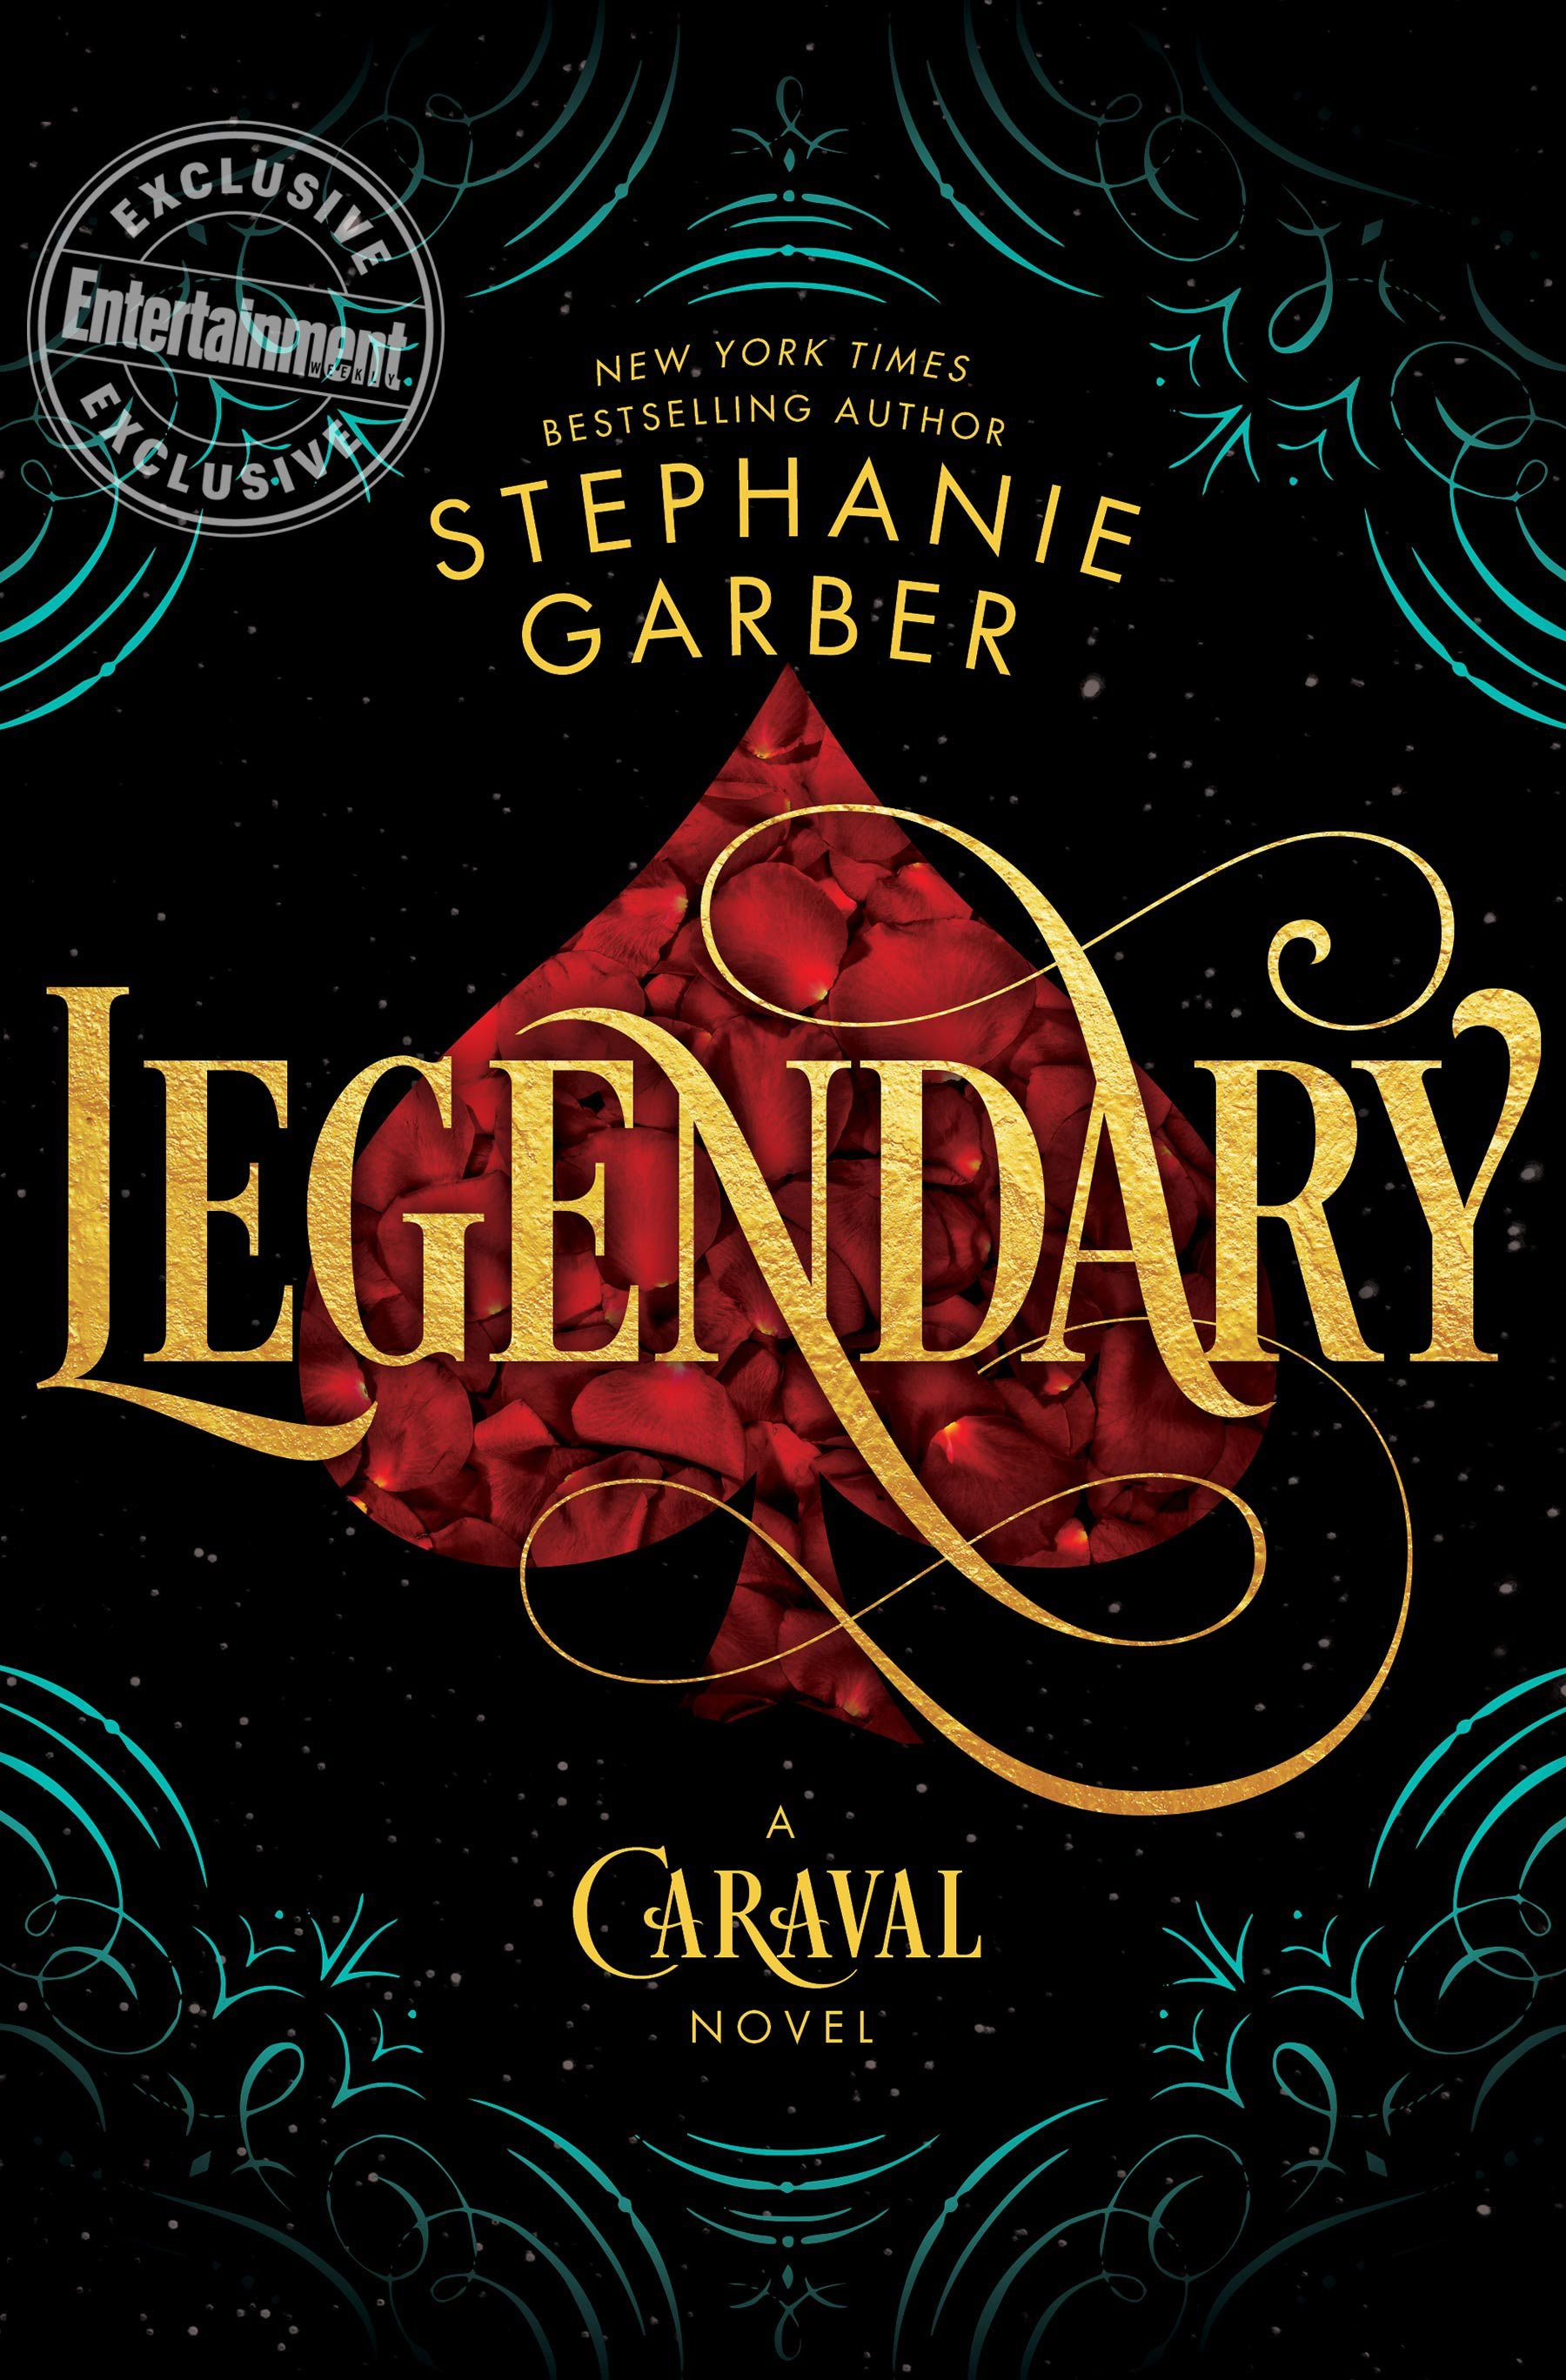 Image result for legendary stephanie garber covers